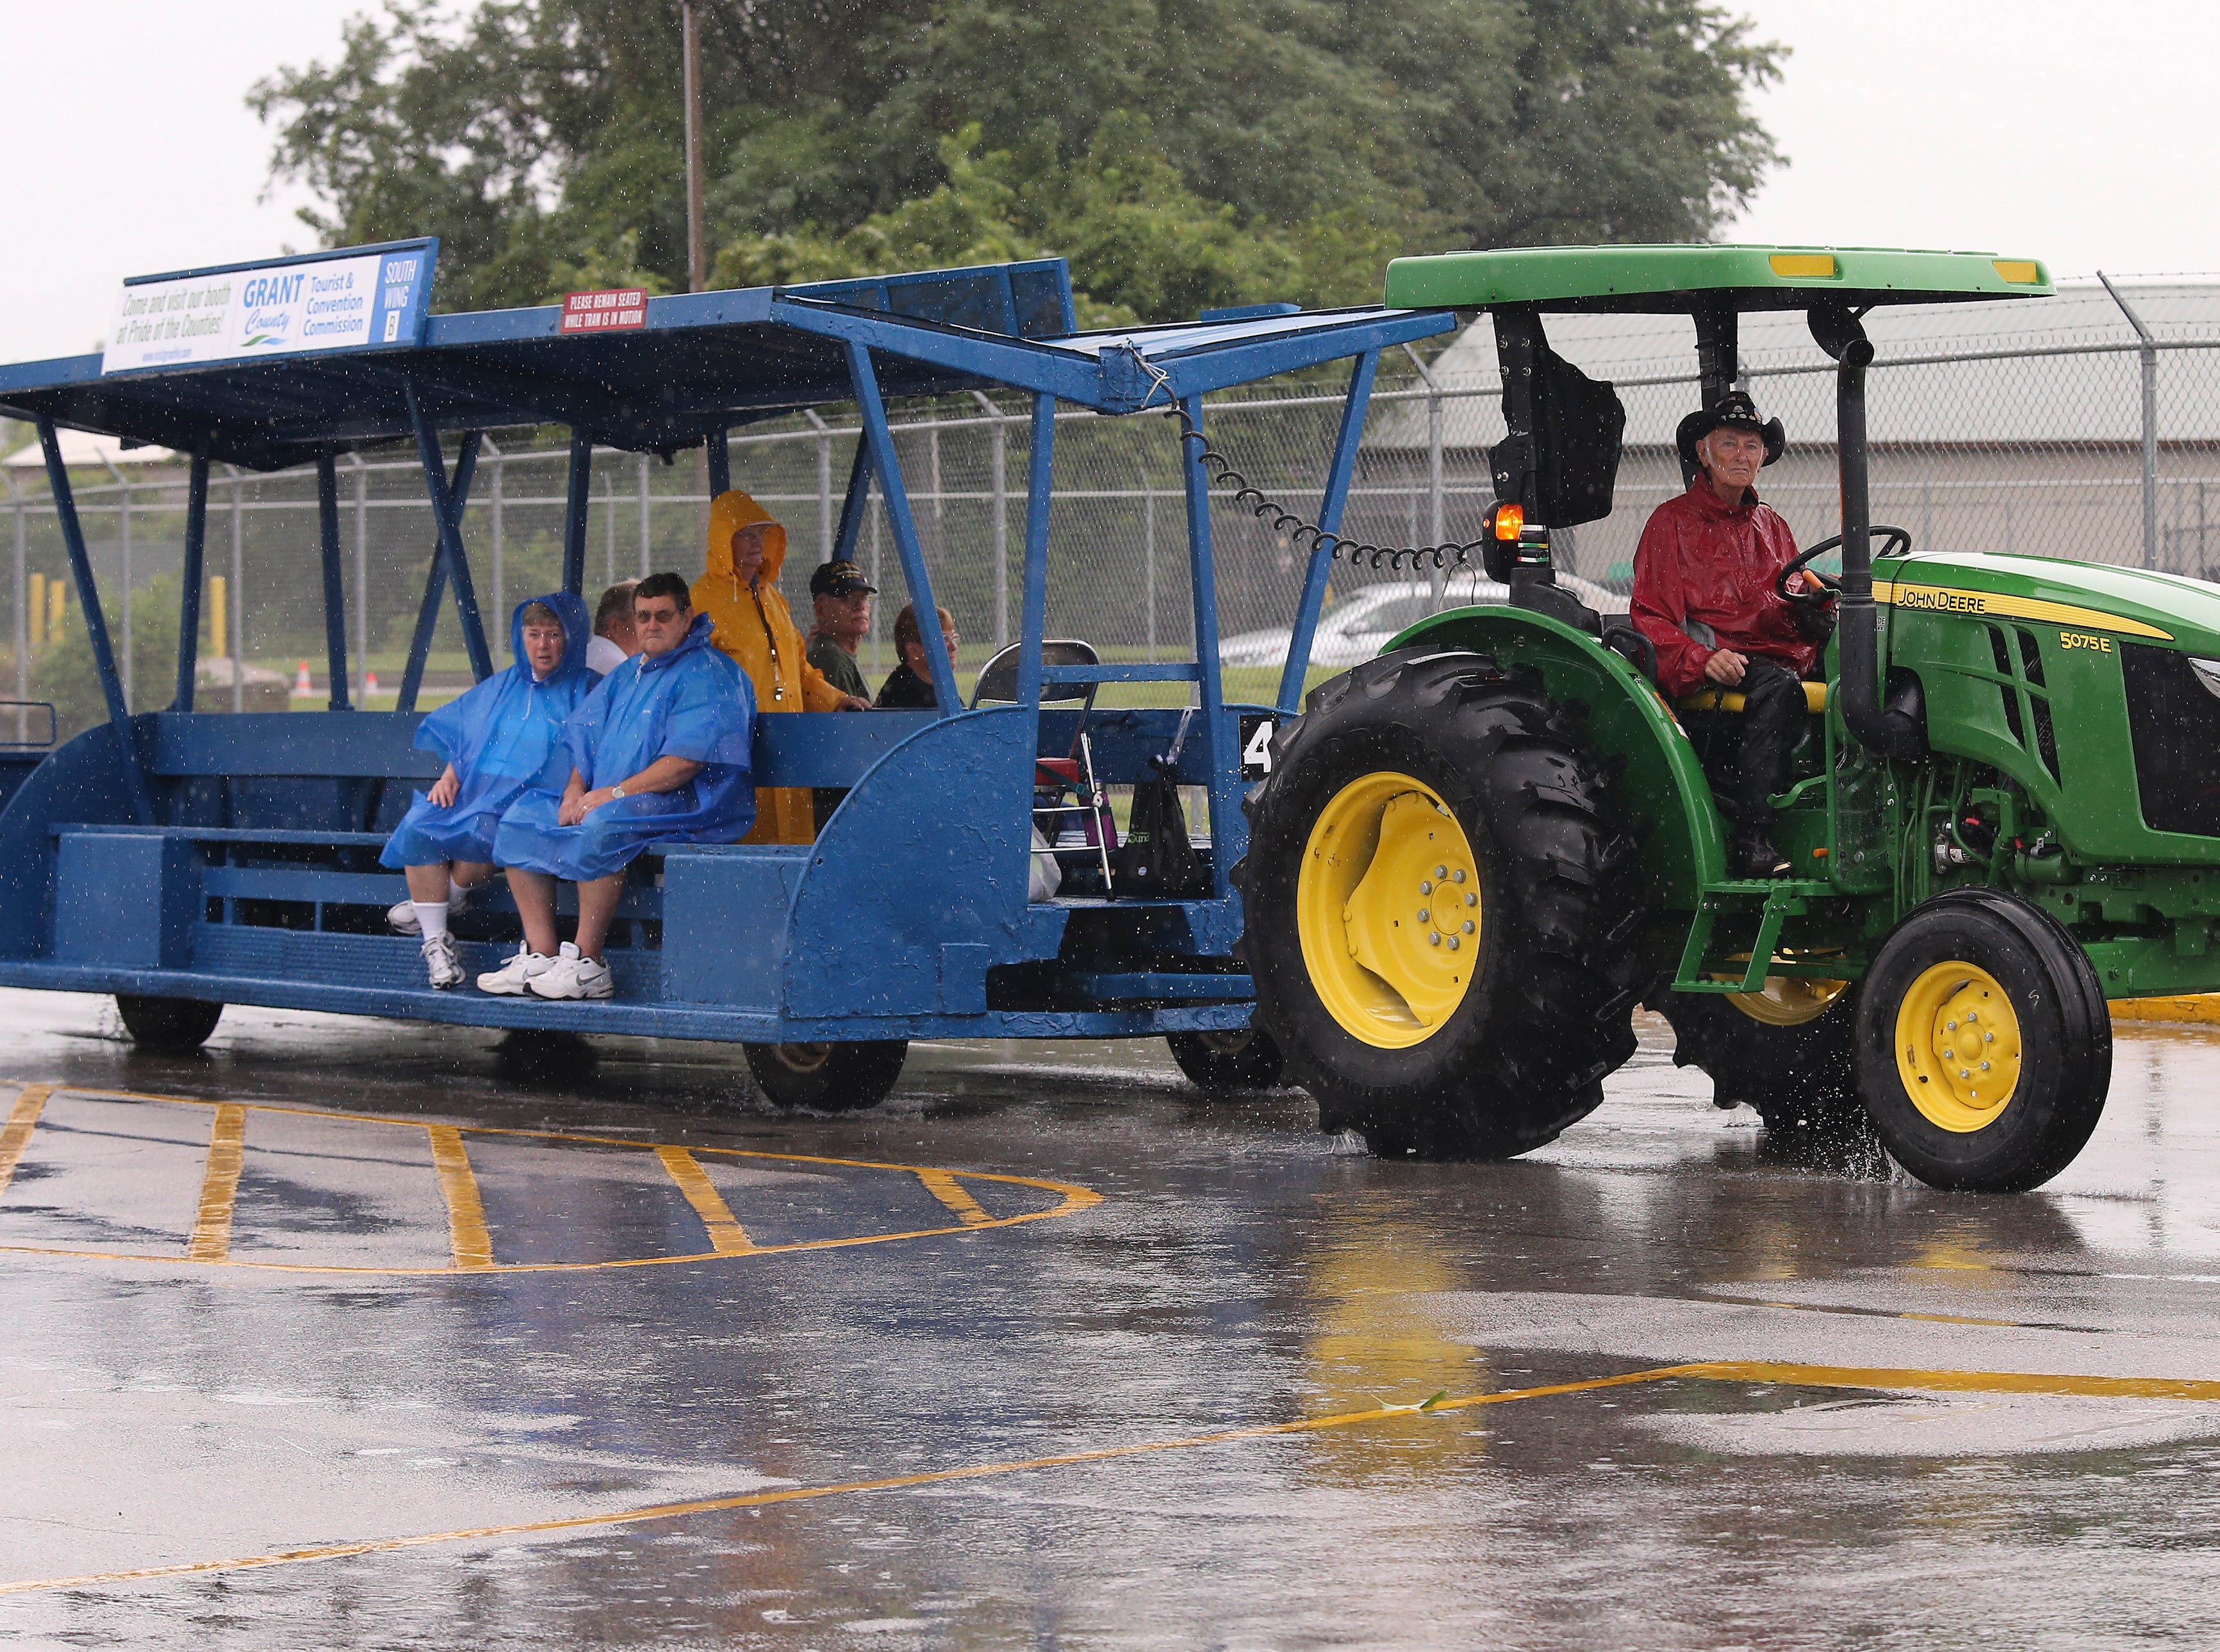 Fairgoers caught a ride to avoid the rain on the first day of the Kentucky State Fair.Aug. 16, 2018